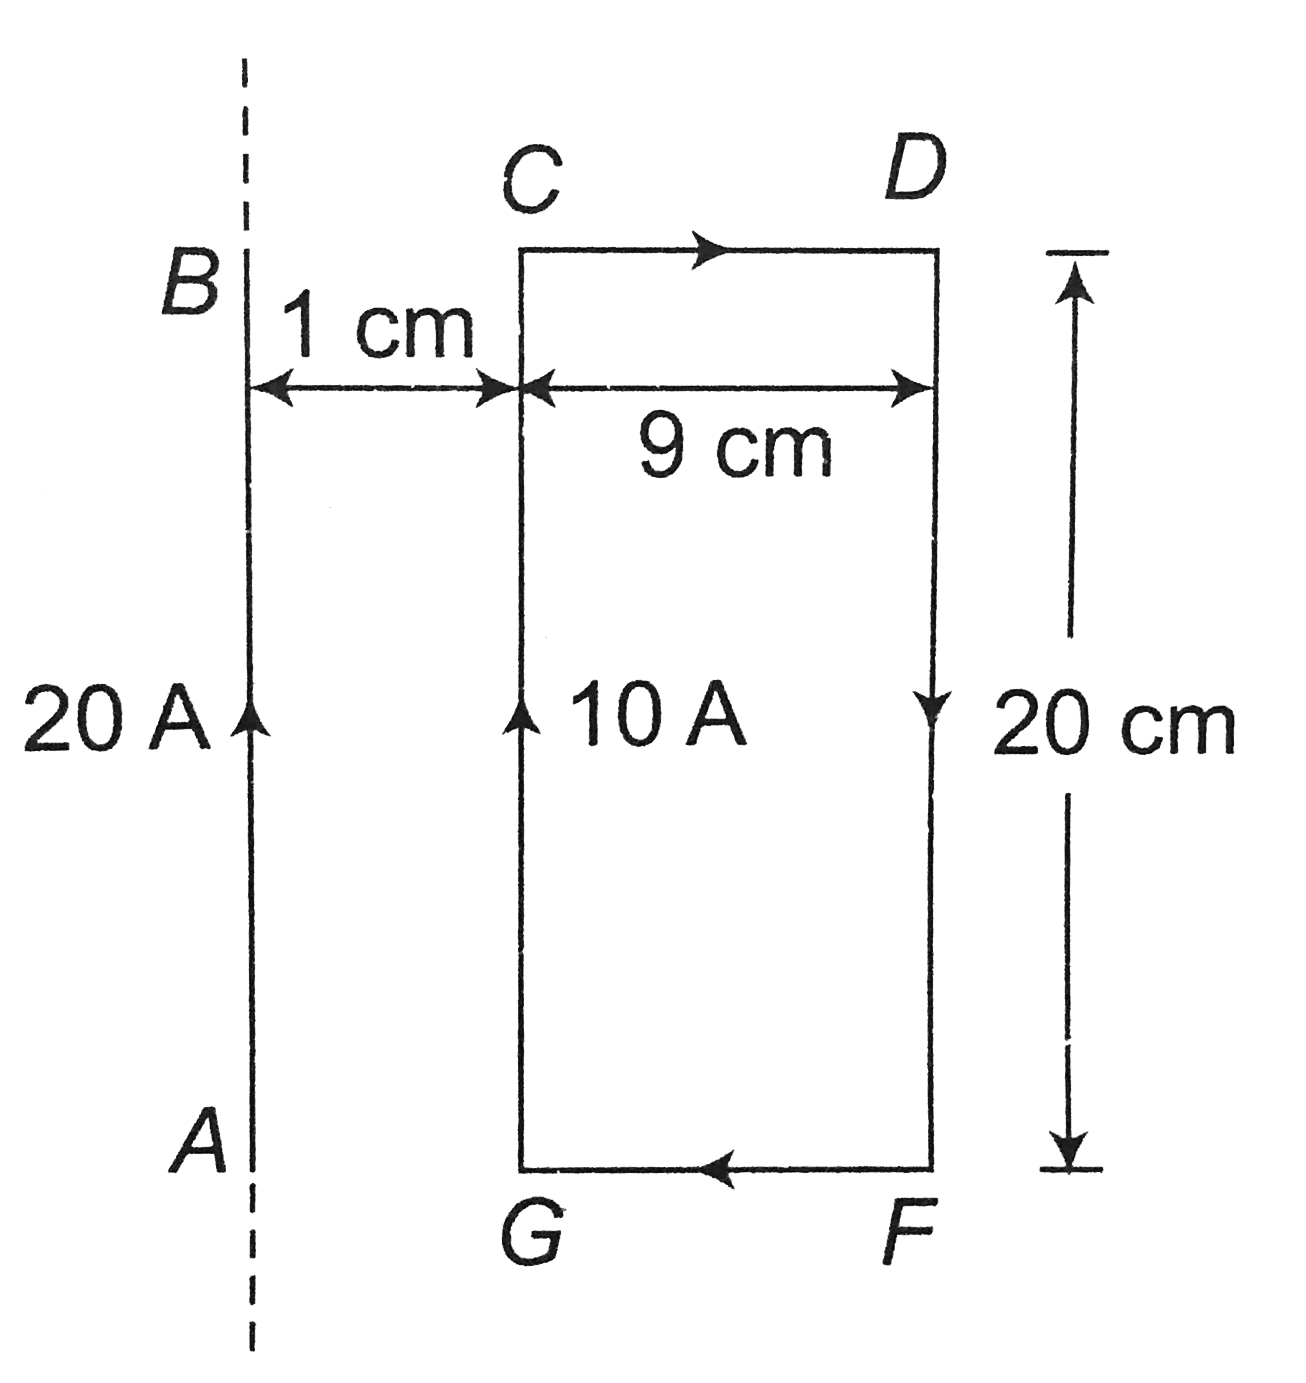 In The Figure Ab Is A Long Straight Wire Carrying A Current Of